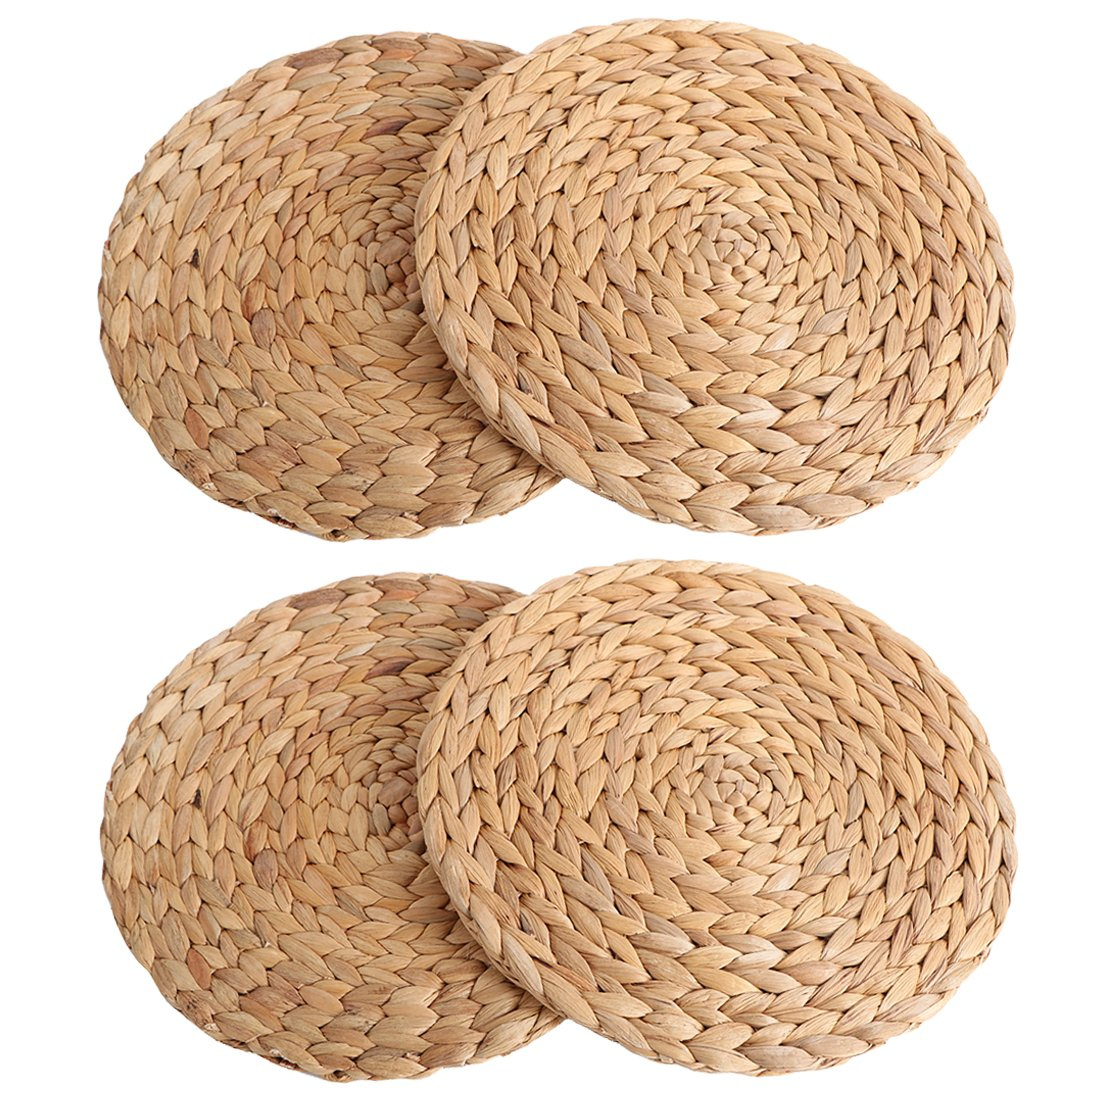 kilofly 4pc Natural Water Hyacinth Weave Placemat Round Braided Rattan Tablemats, 11 inch